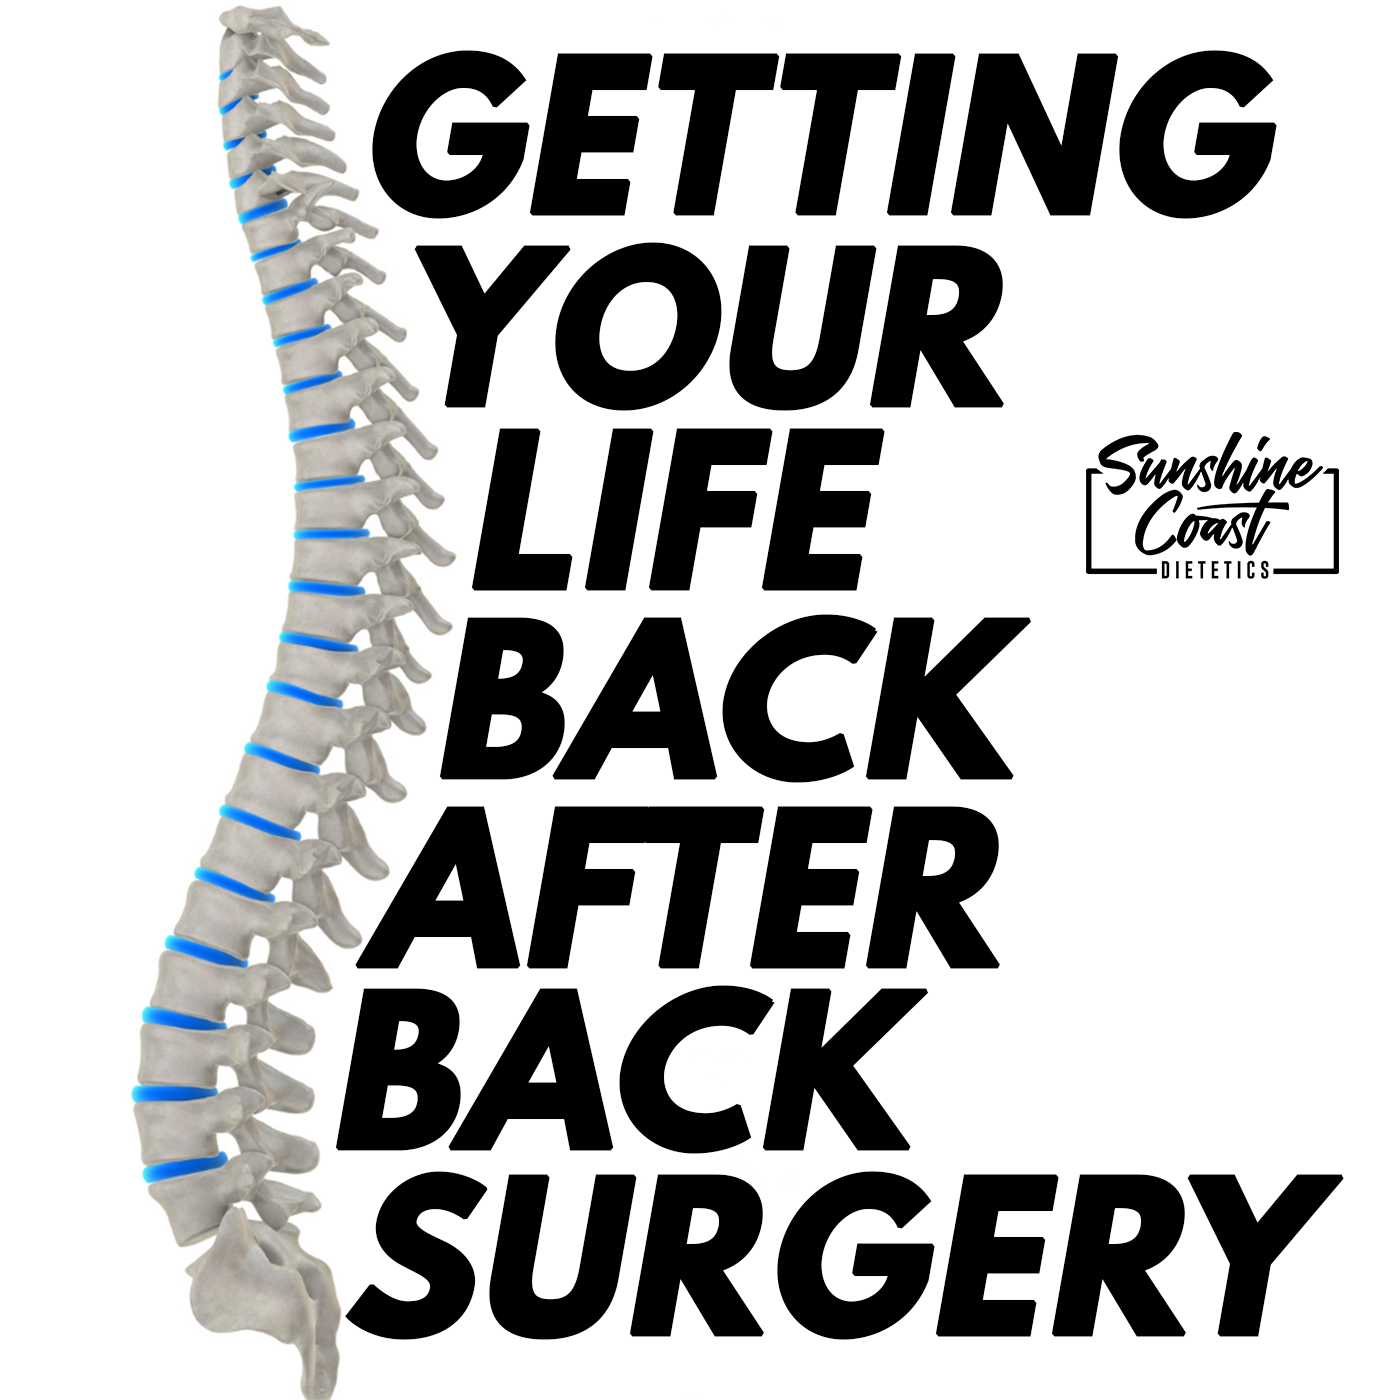 Getting Your Life Back After Back Surgery